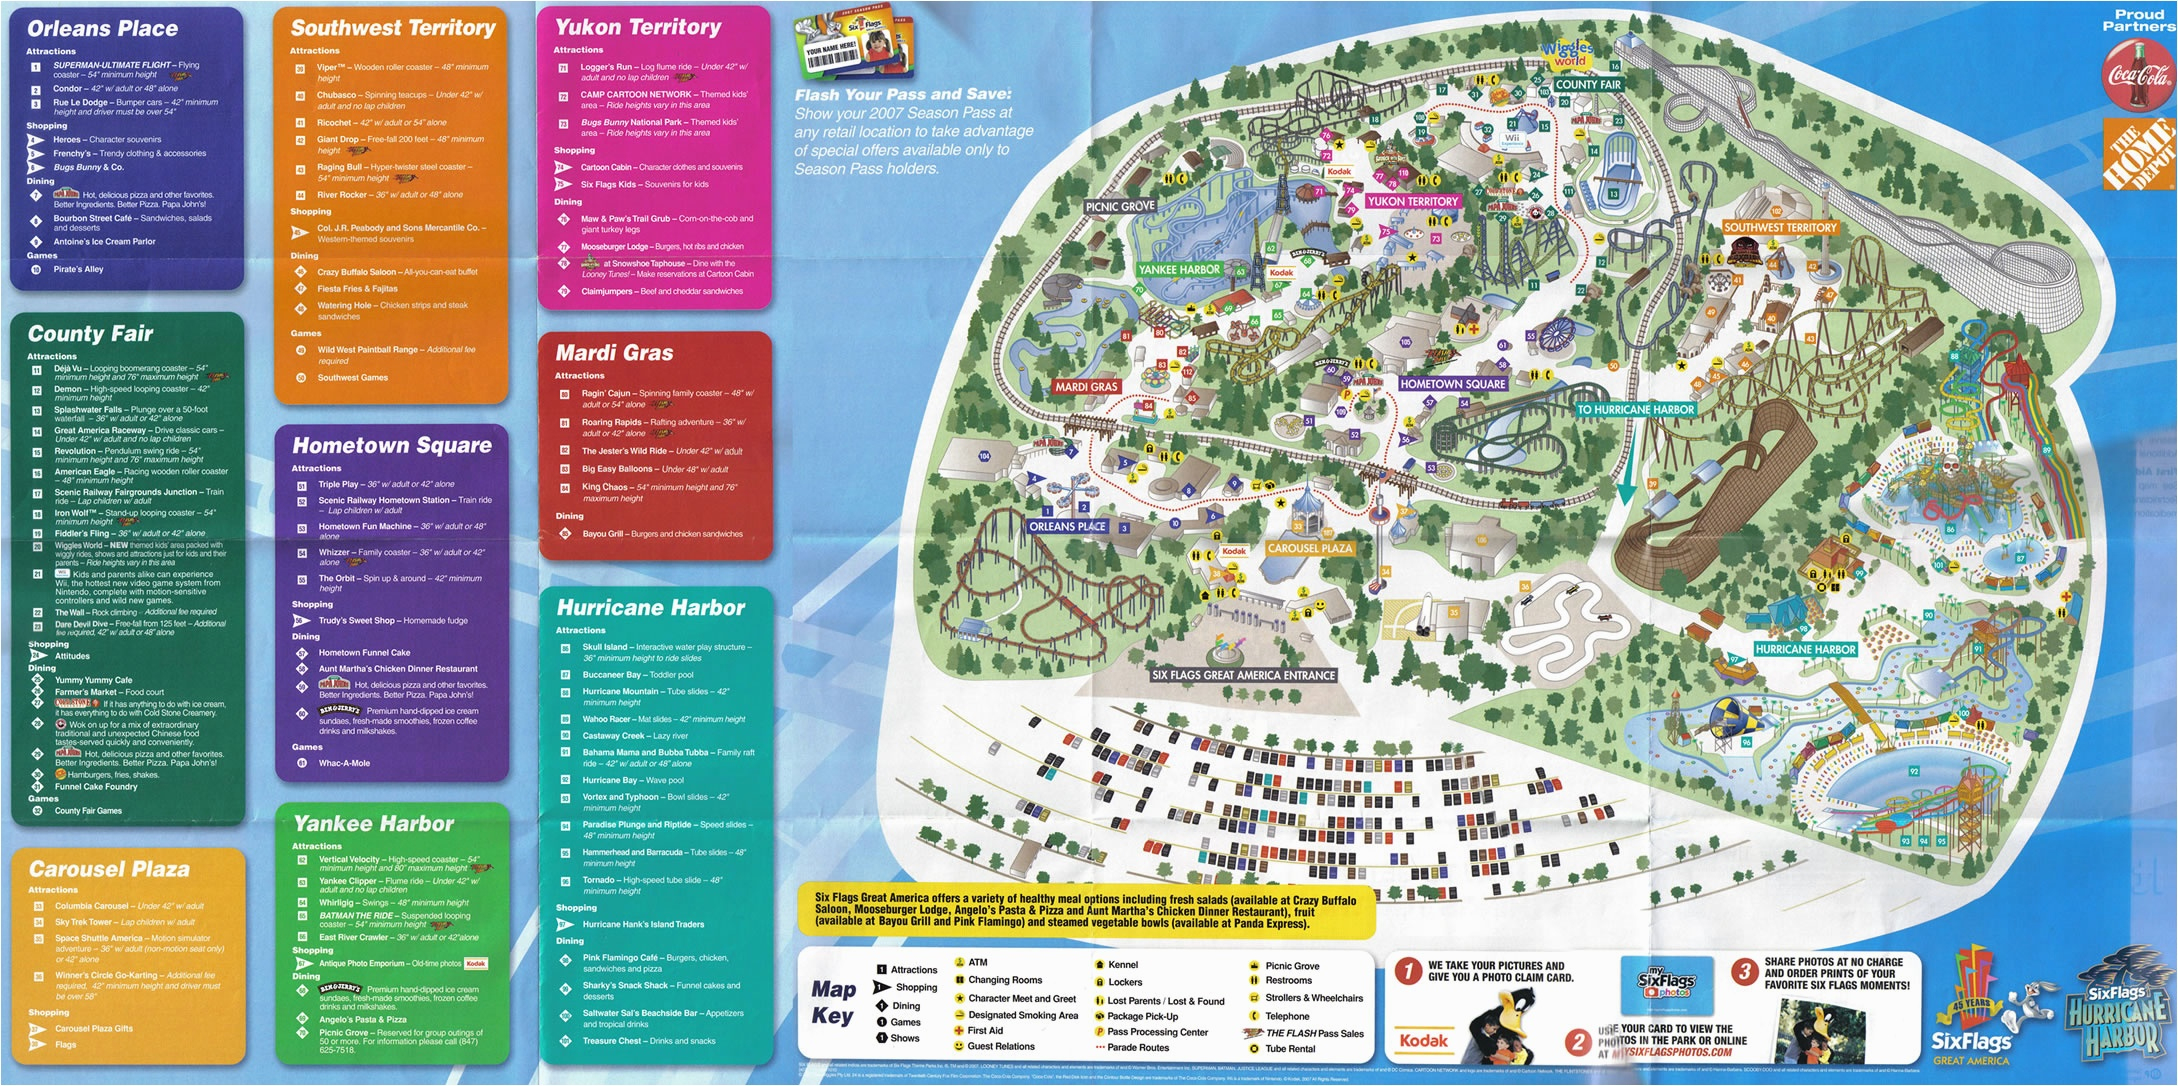 Six Flags Great America Map Burkeen Great America San Jose Map - California's Great America Map 2018